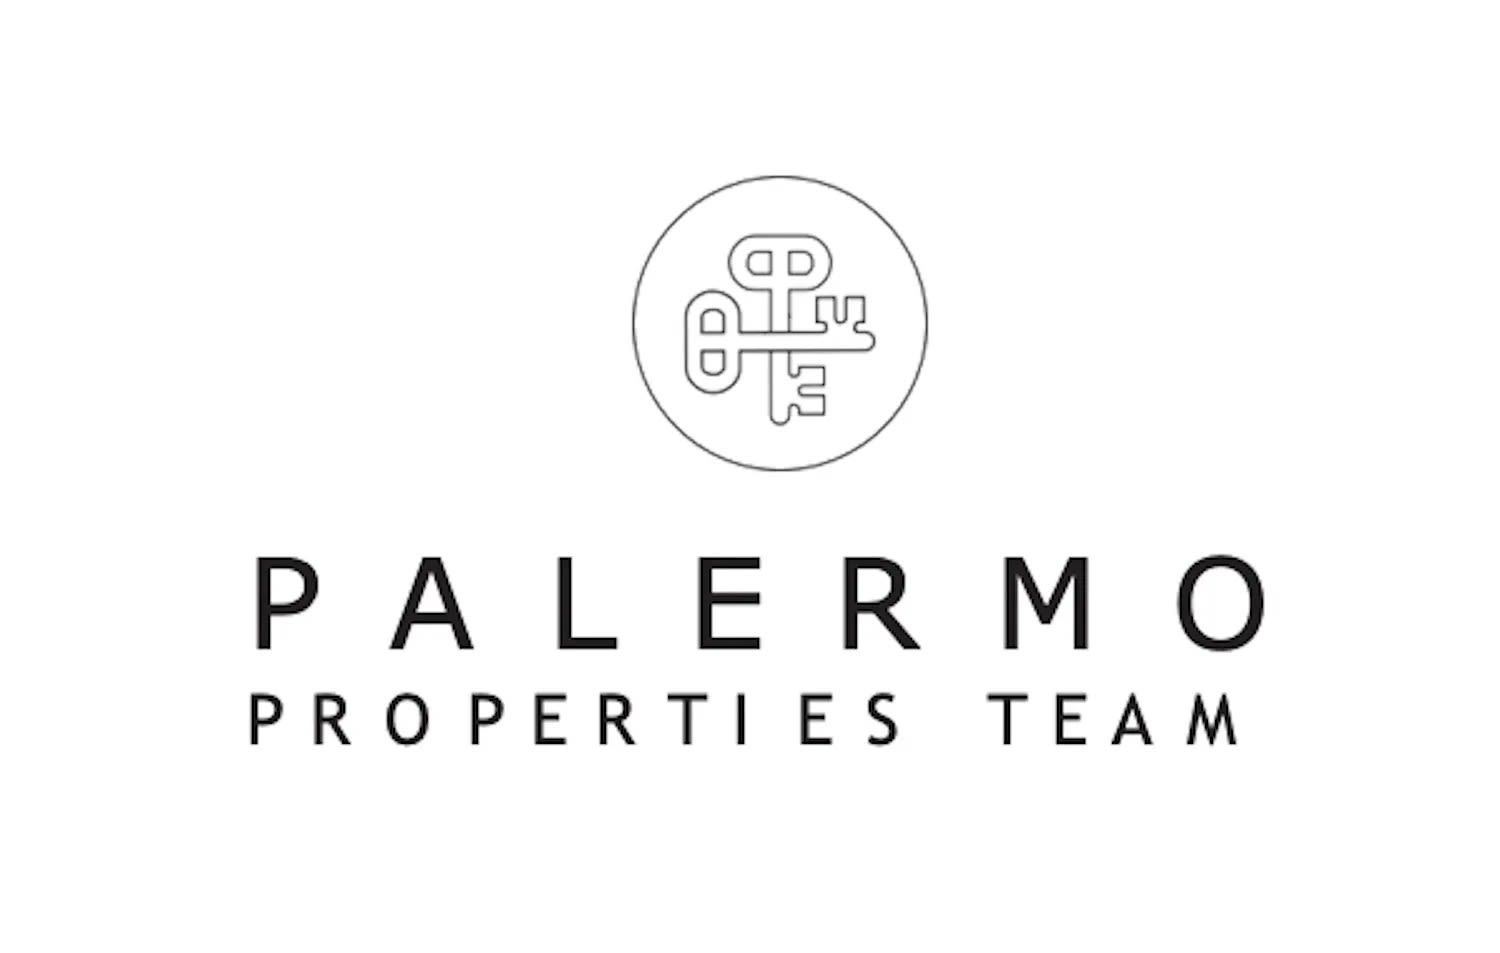 Stephanie Sills, REALTOR® - Palermo Properties Team